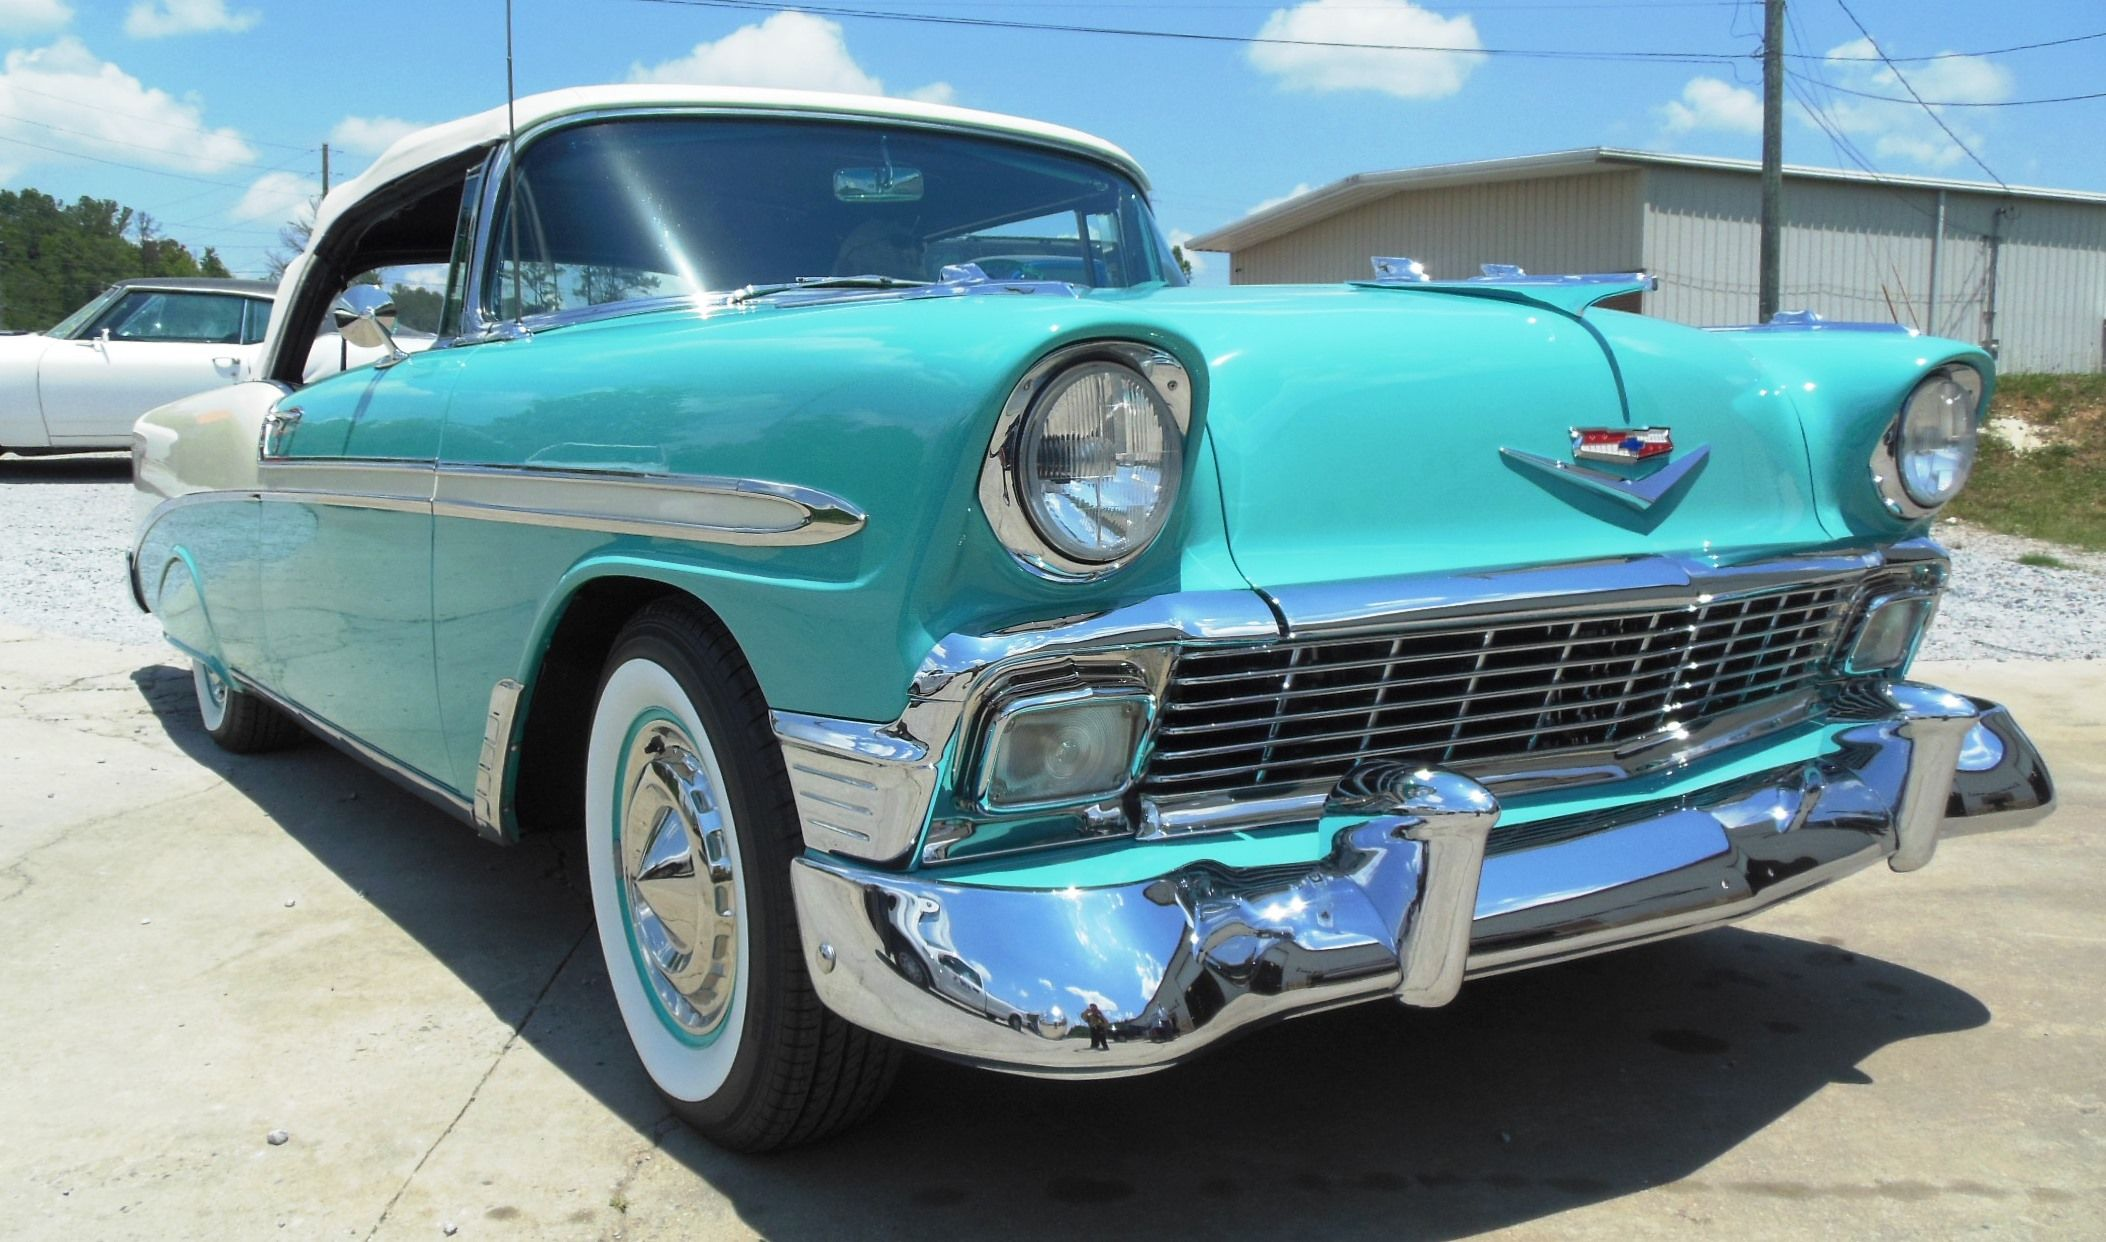 1956 Chevy Bel Air restored by Impatient Creations, Inc. in ...